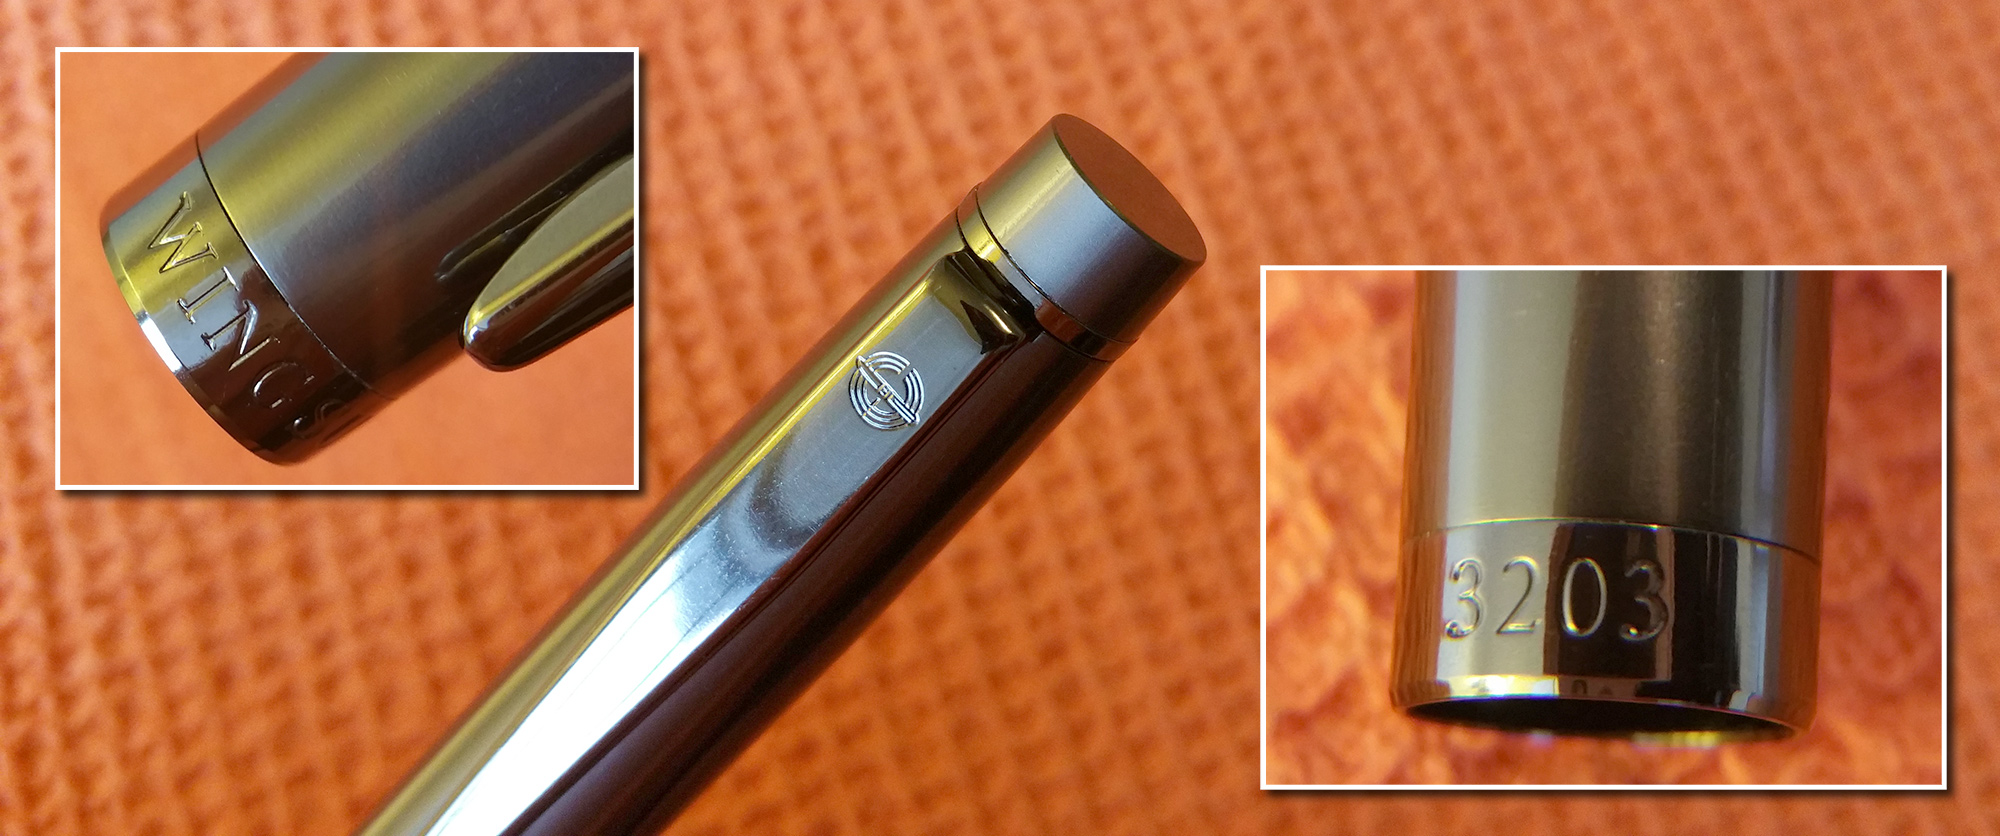 Closeup of Wing Sung 3203 Cap showing engravings on the clip and cap band